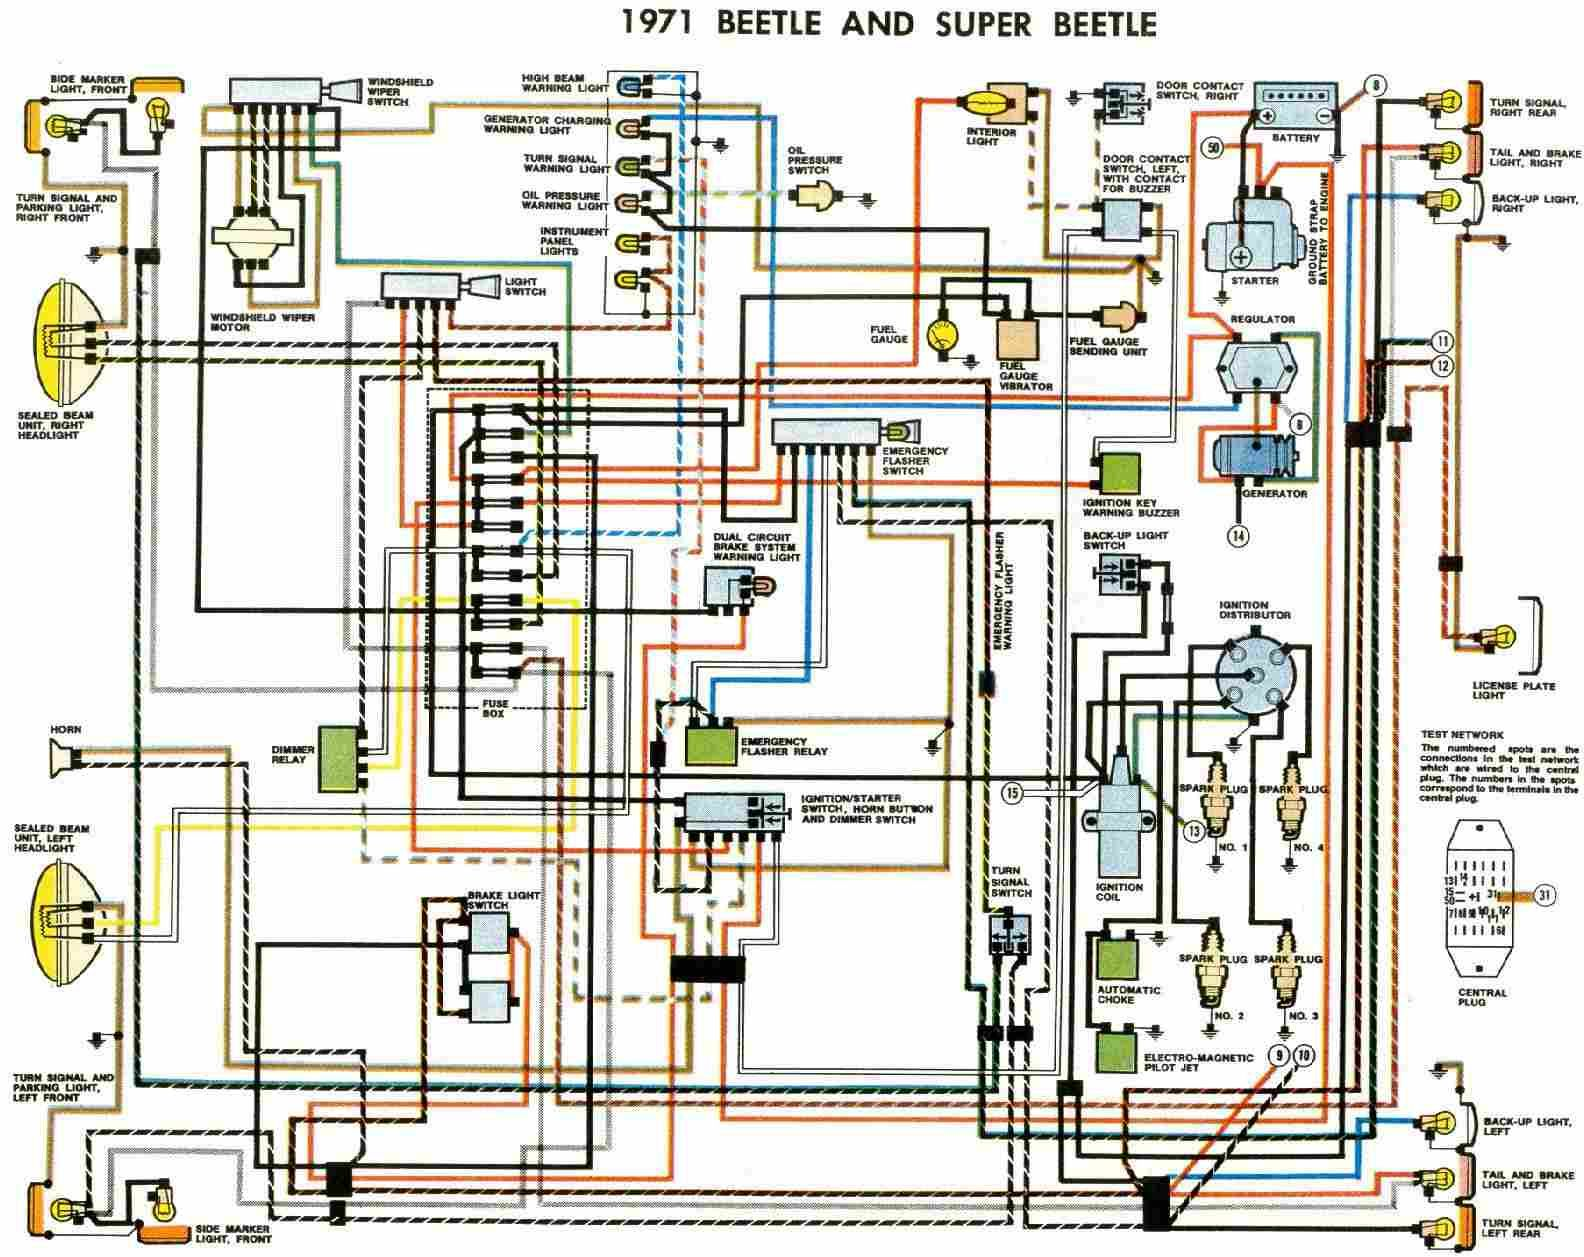 auto wiring diagram vw beetle and super beetle byocar auto wiring diagram 1971 vw beetle and super beetle